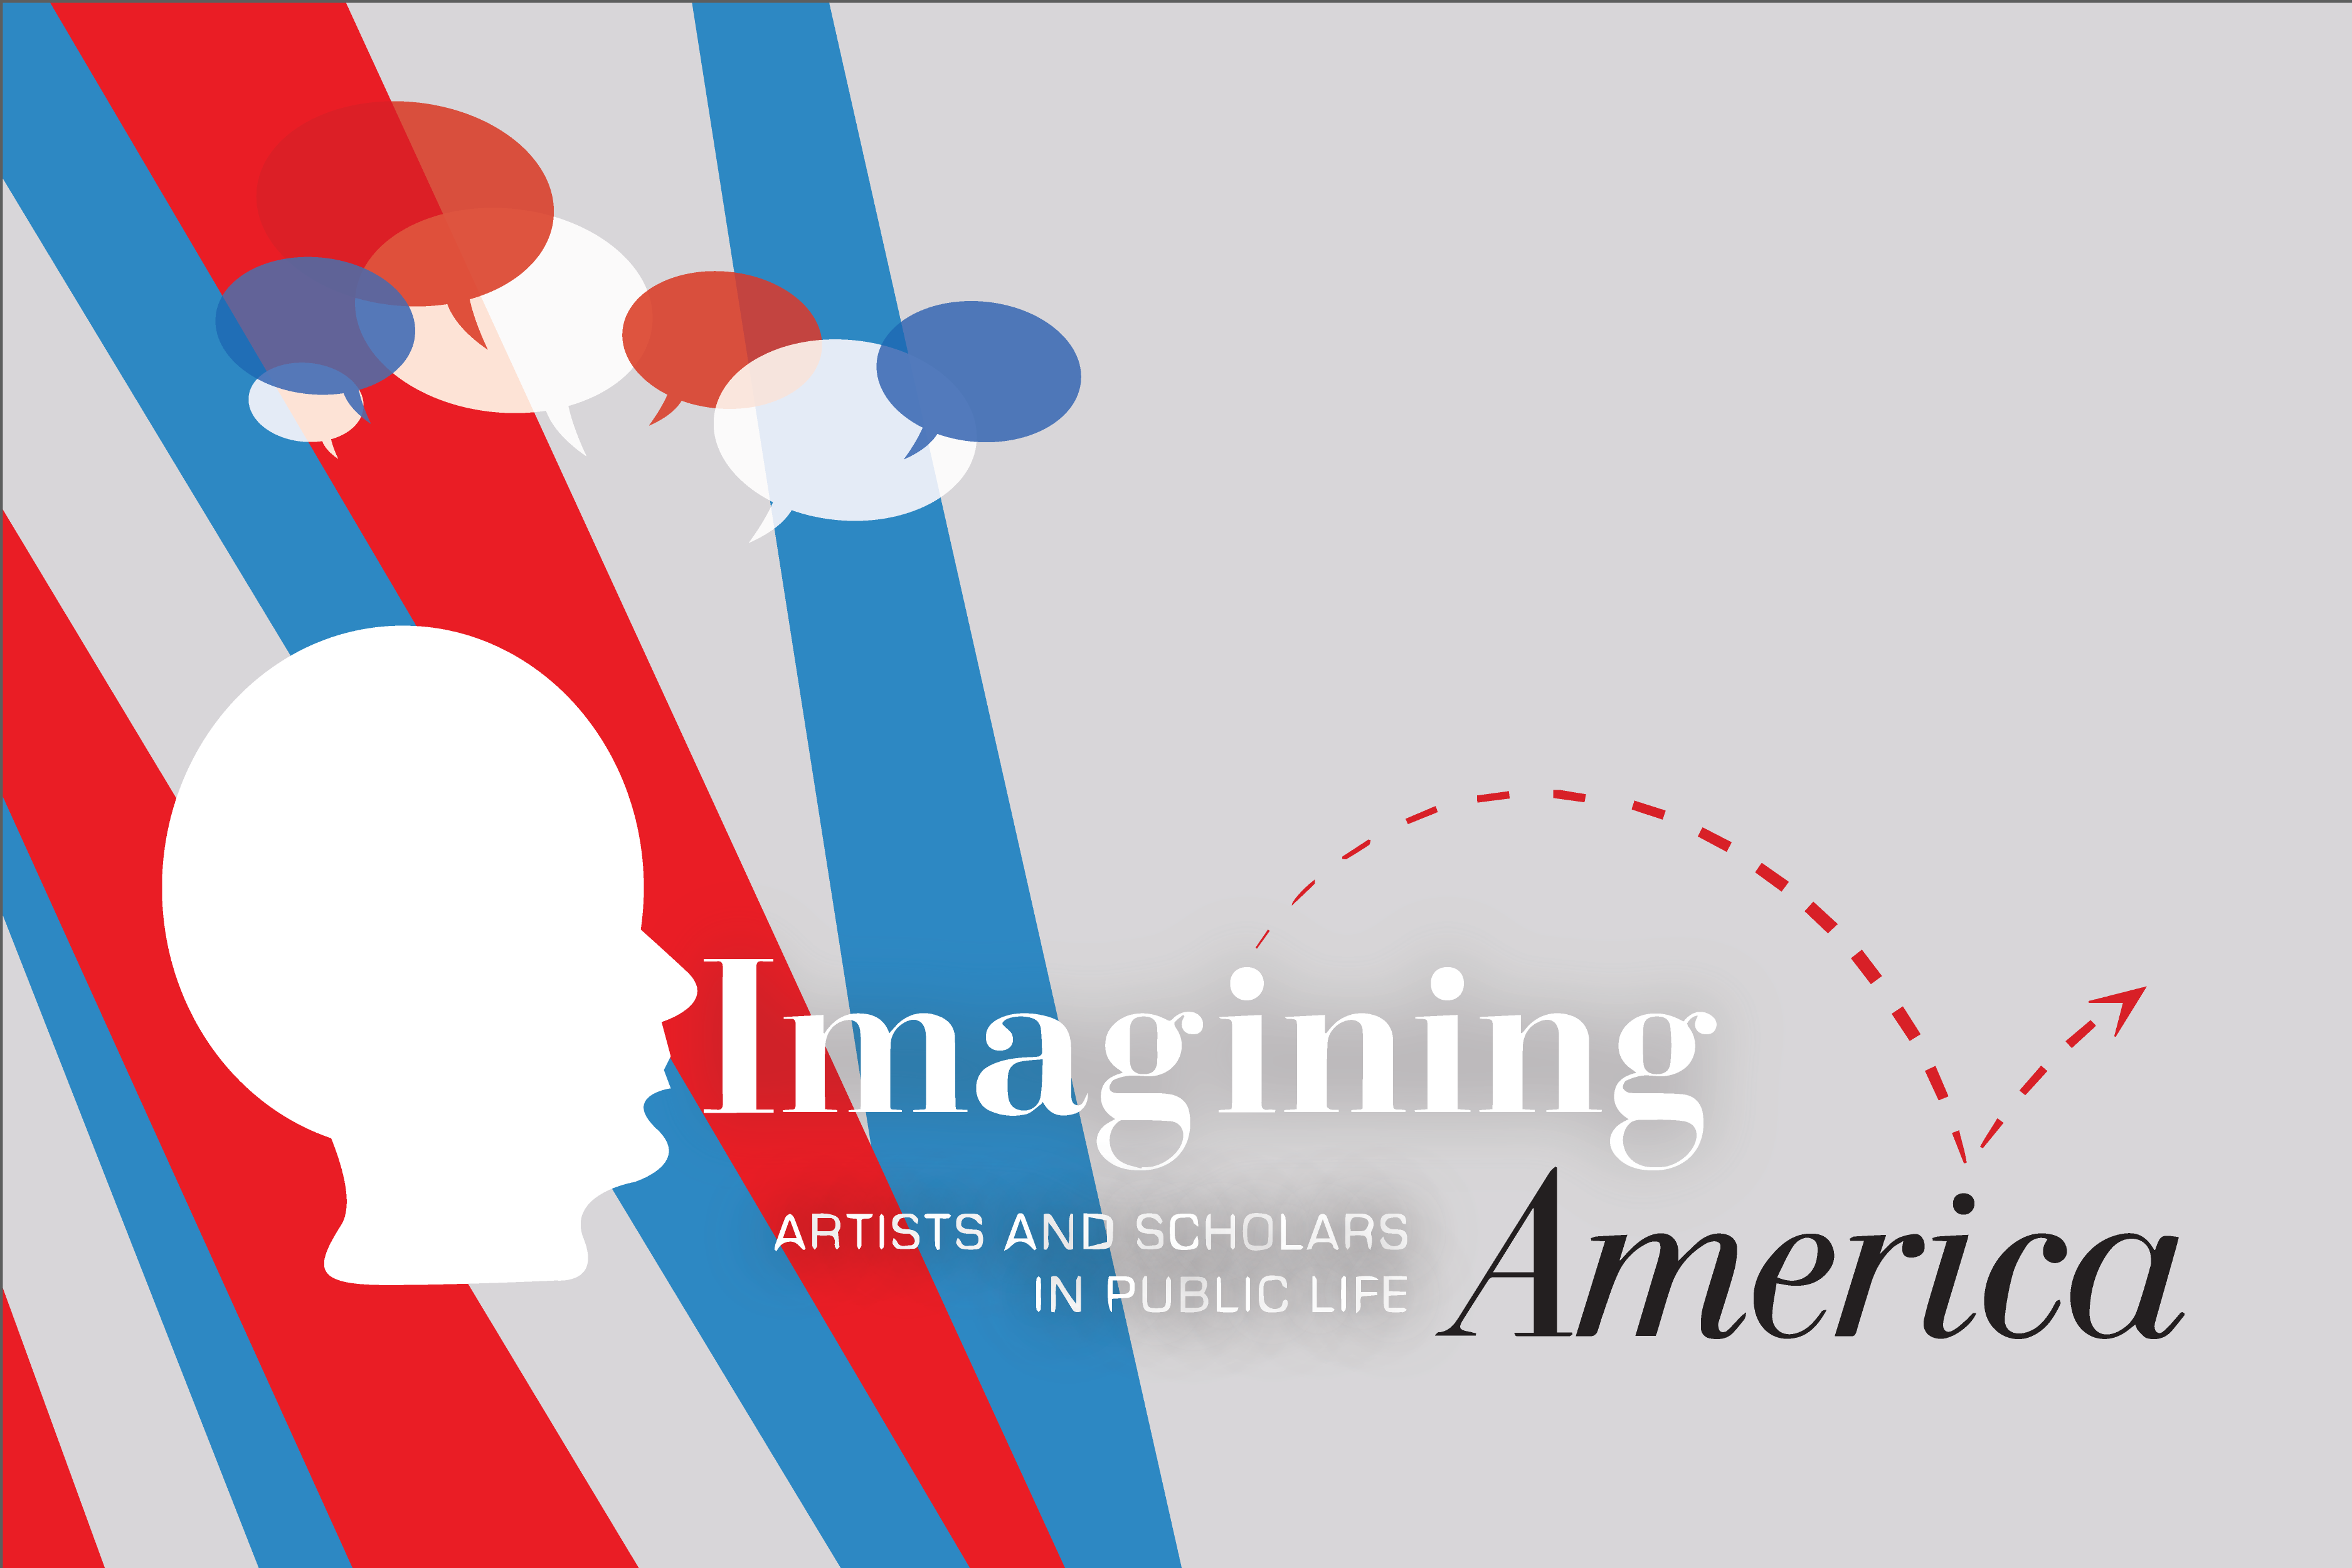 Imagining America partners with UC Davis, seeks proposals for creativity